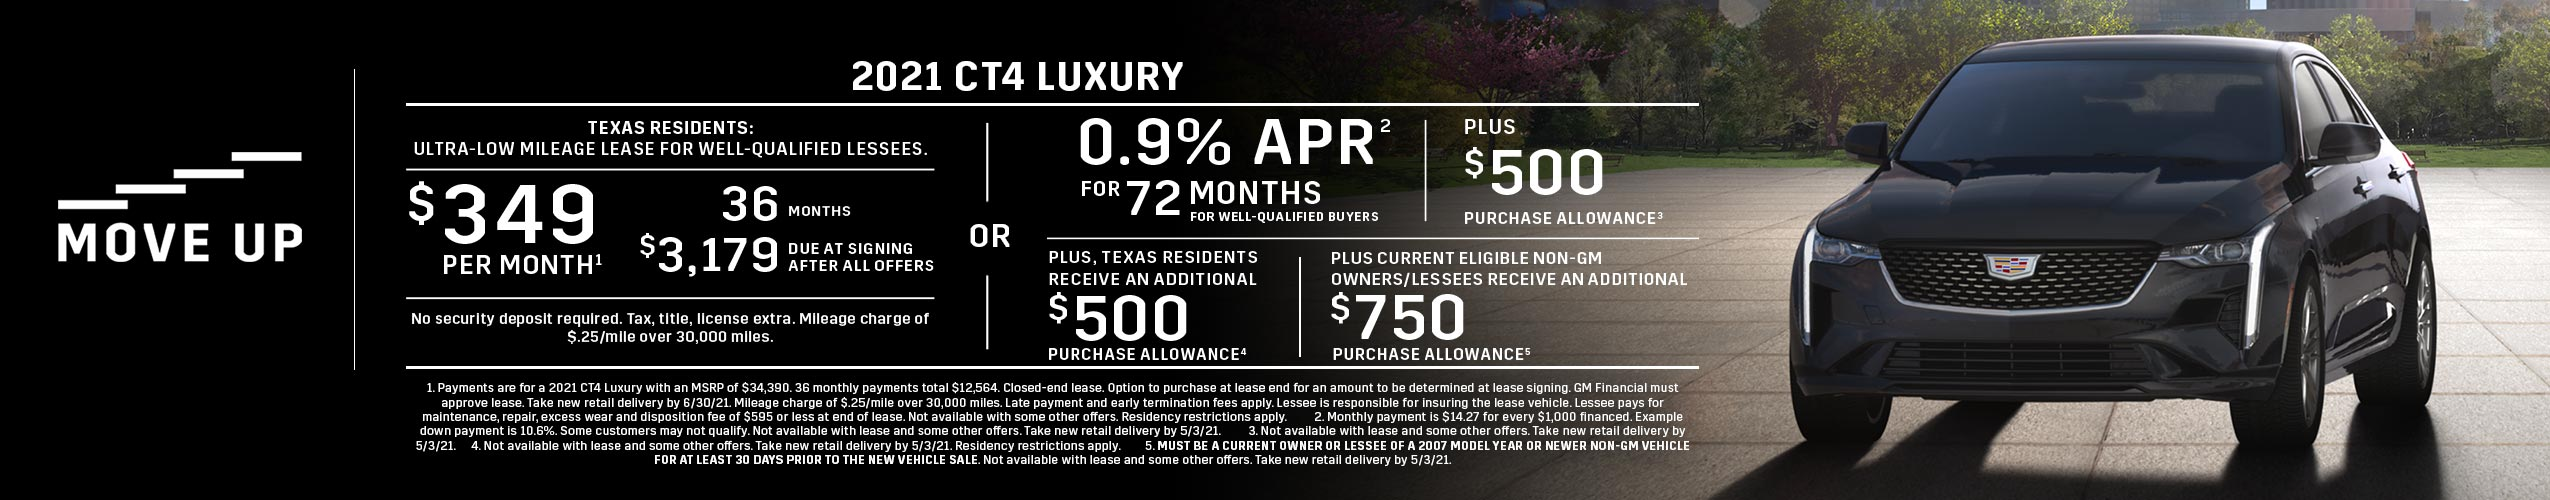 2021 CT4 Luxury: Lease Offer (Image) - f949e6